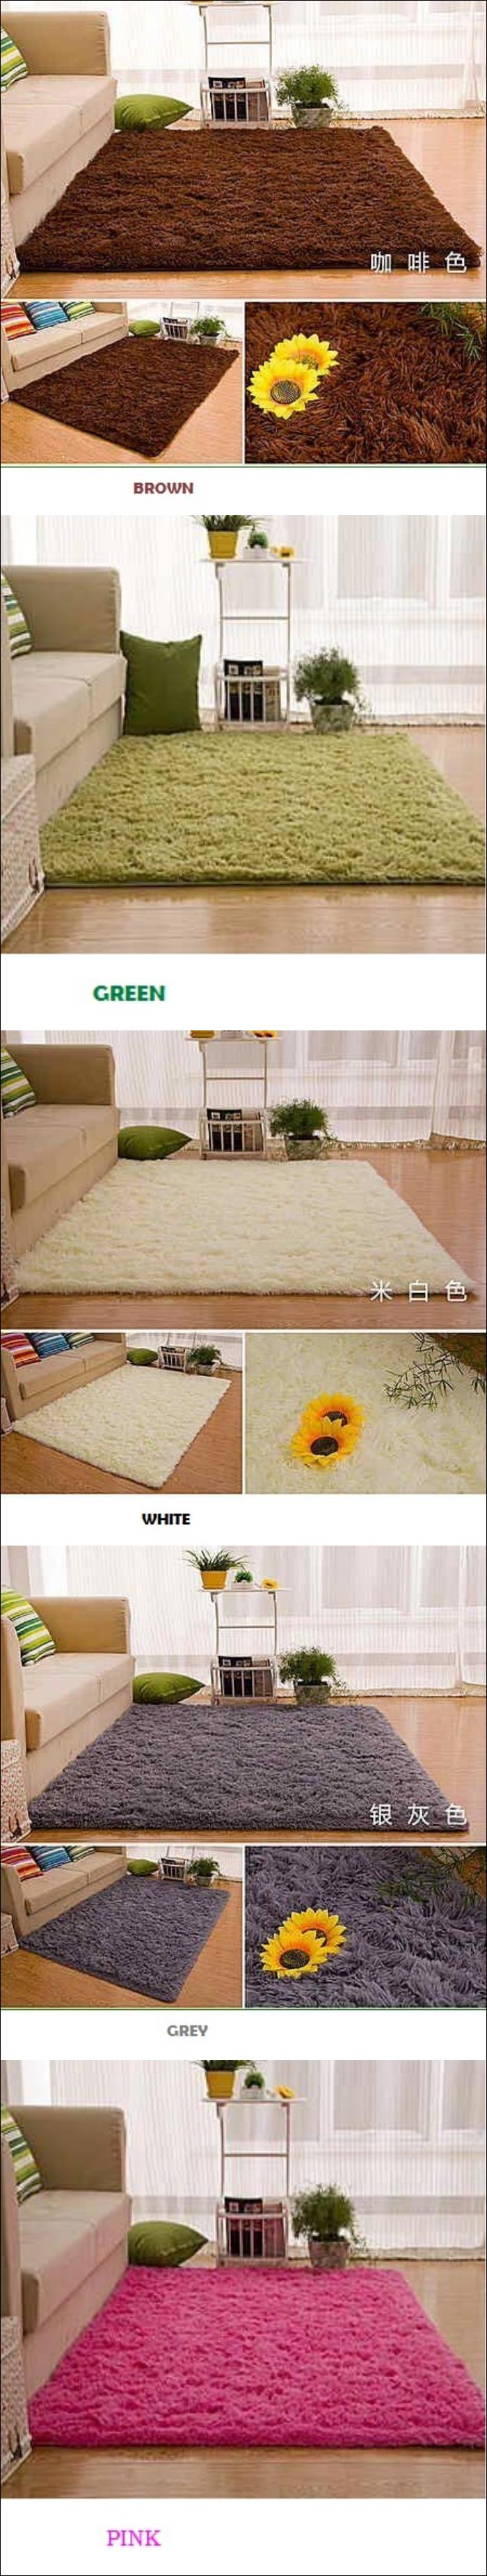 SQUARE SHAGGY SOFT COMFORTABLE COLORFUL HOUSE OFFICE CARPET ROOM LB